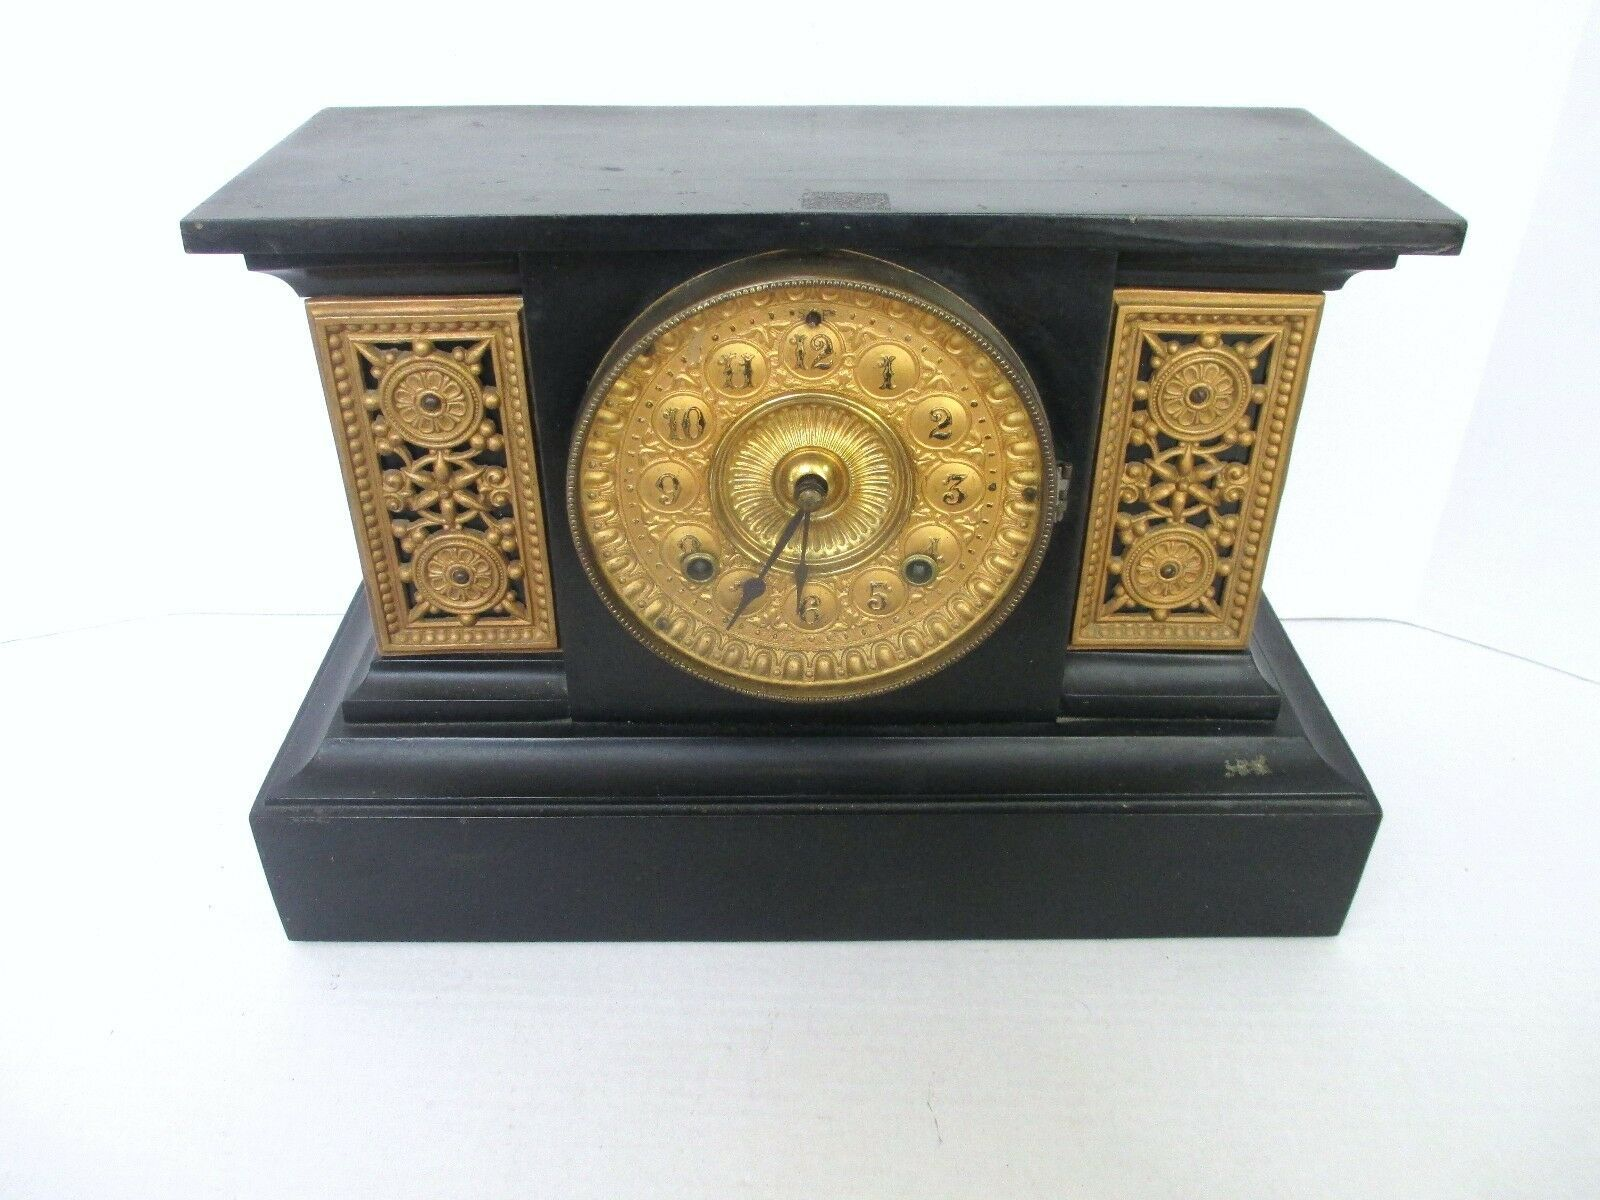 Details about Antique Ansonia Mantle or Shelf Clock 1882